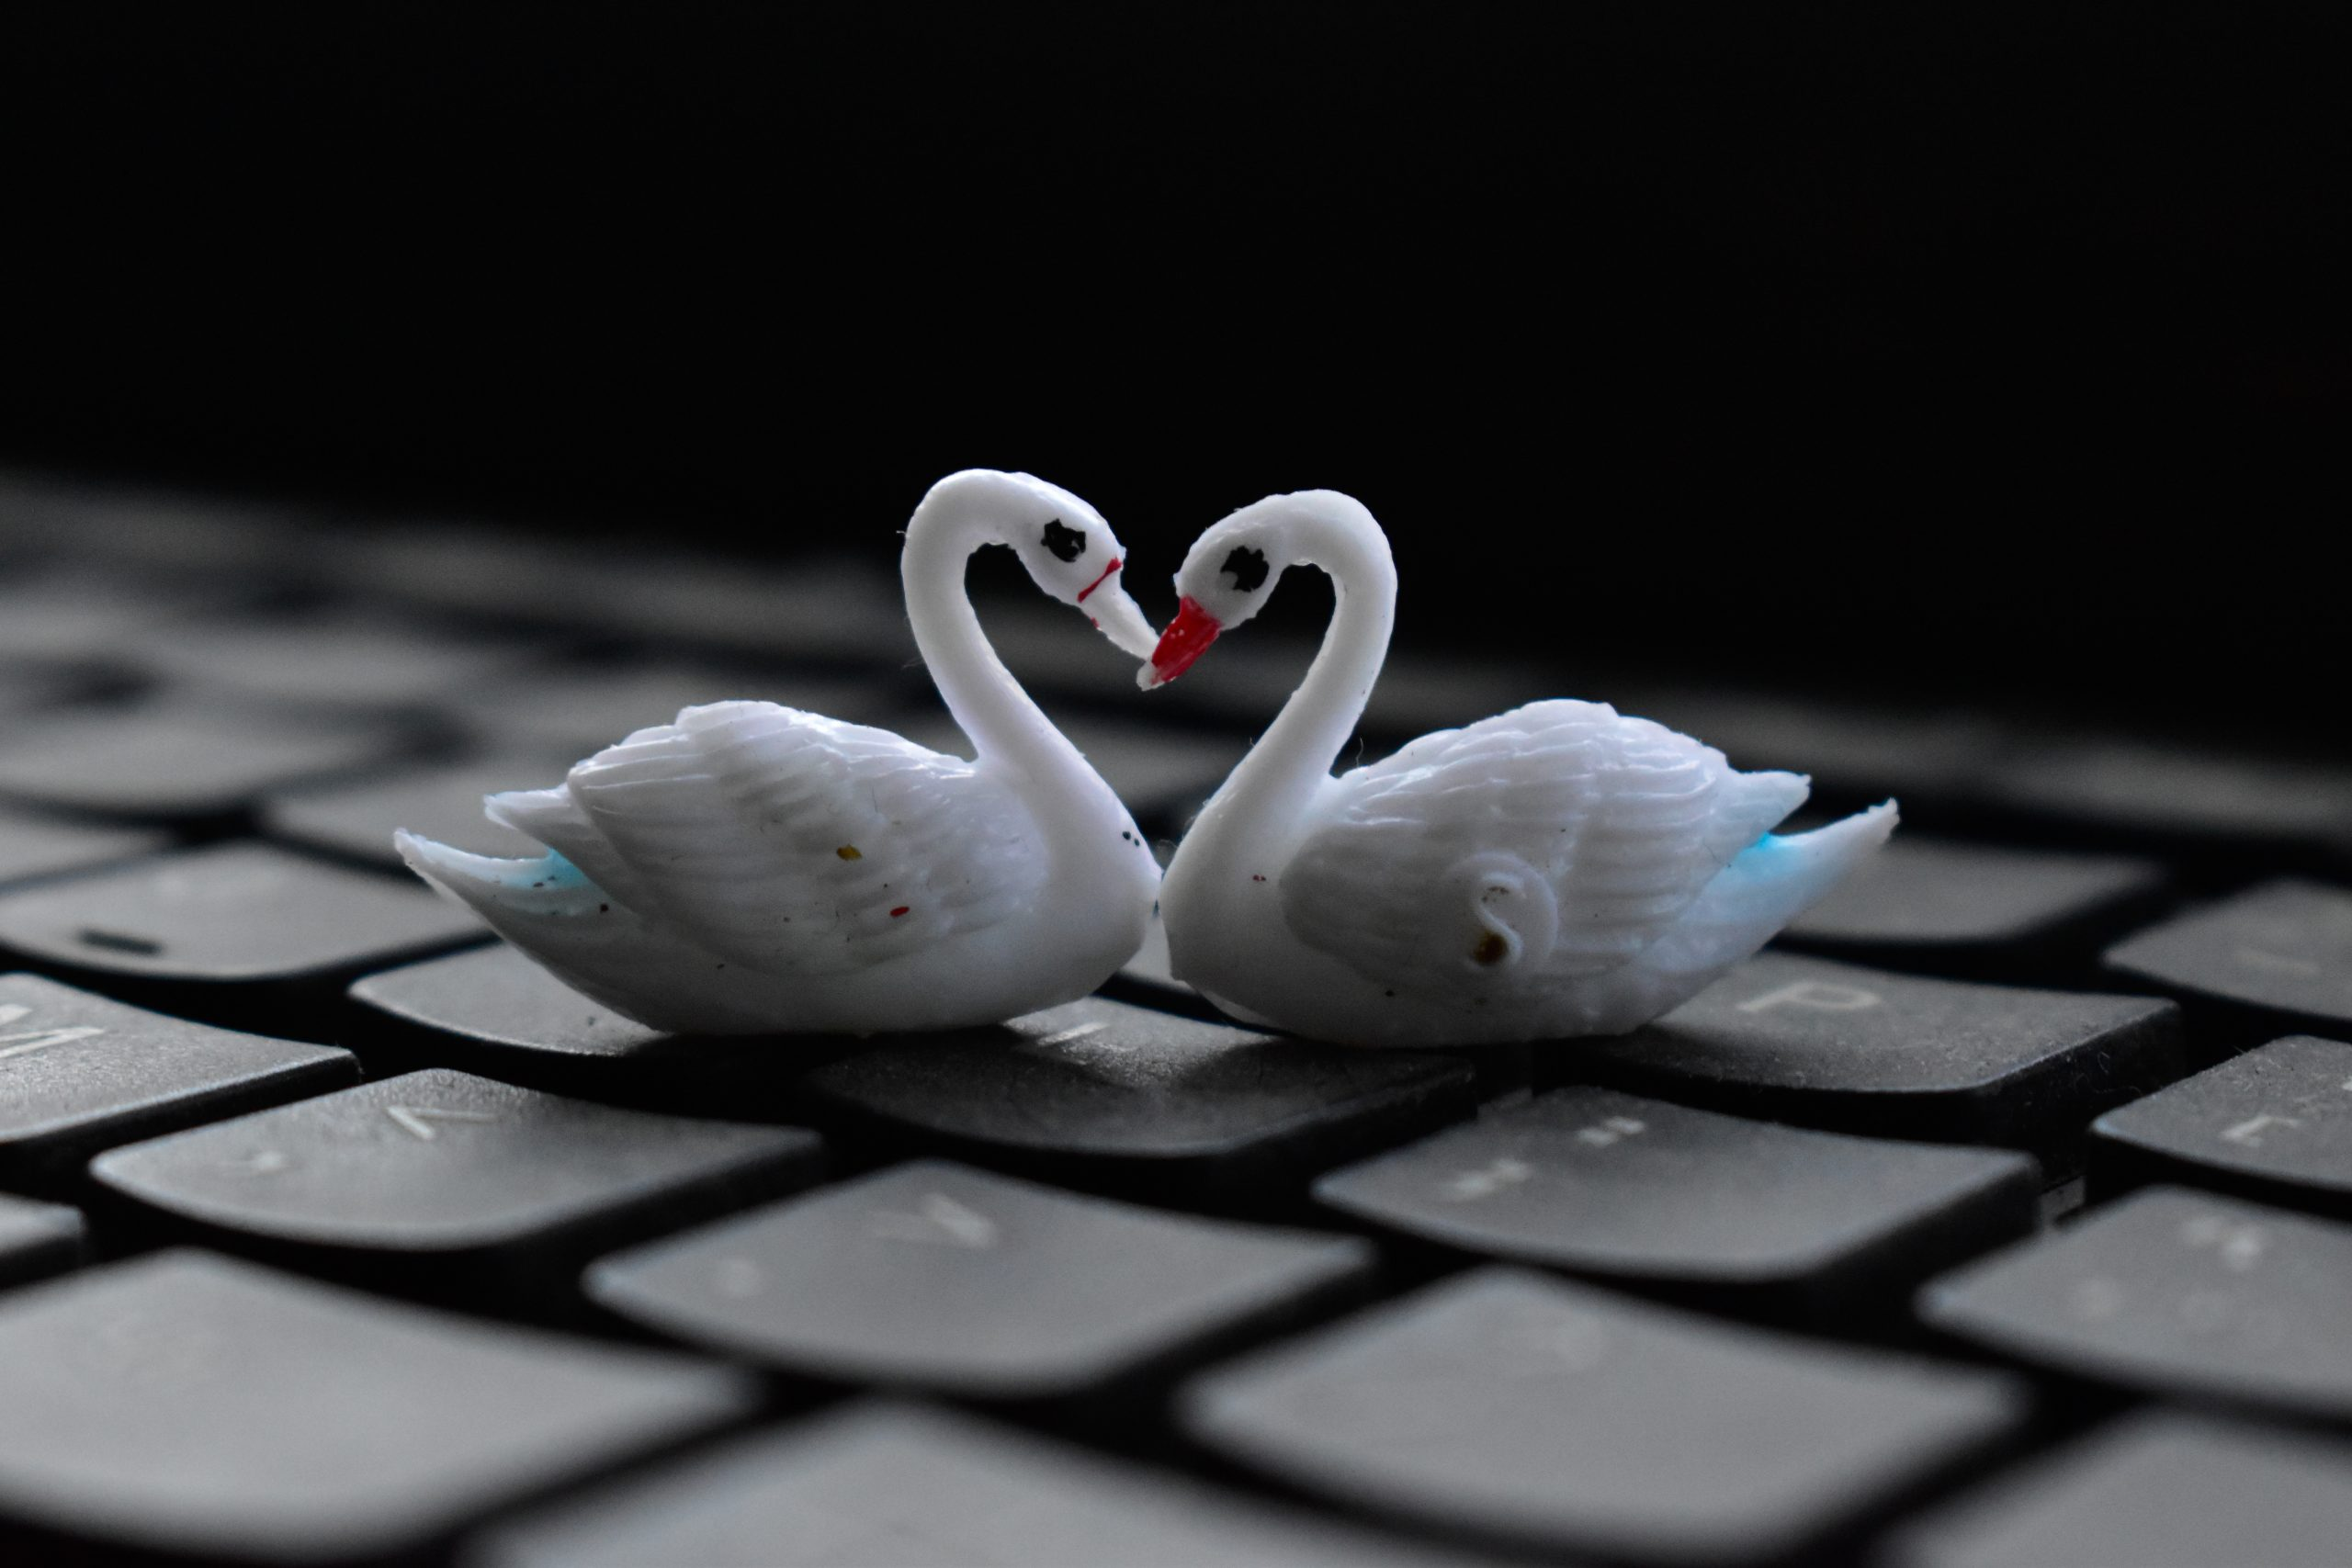 Toy swan pair on key board